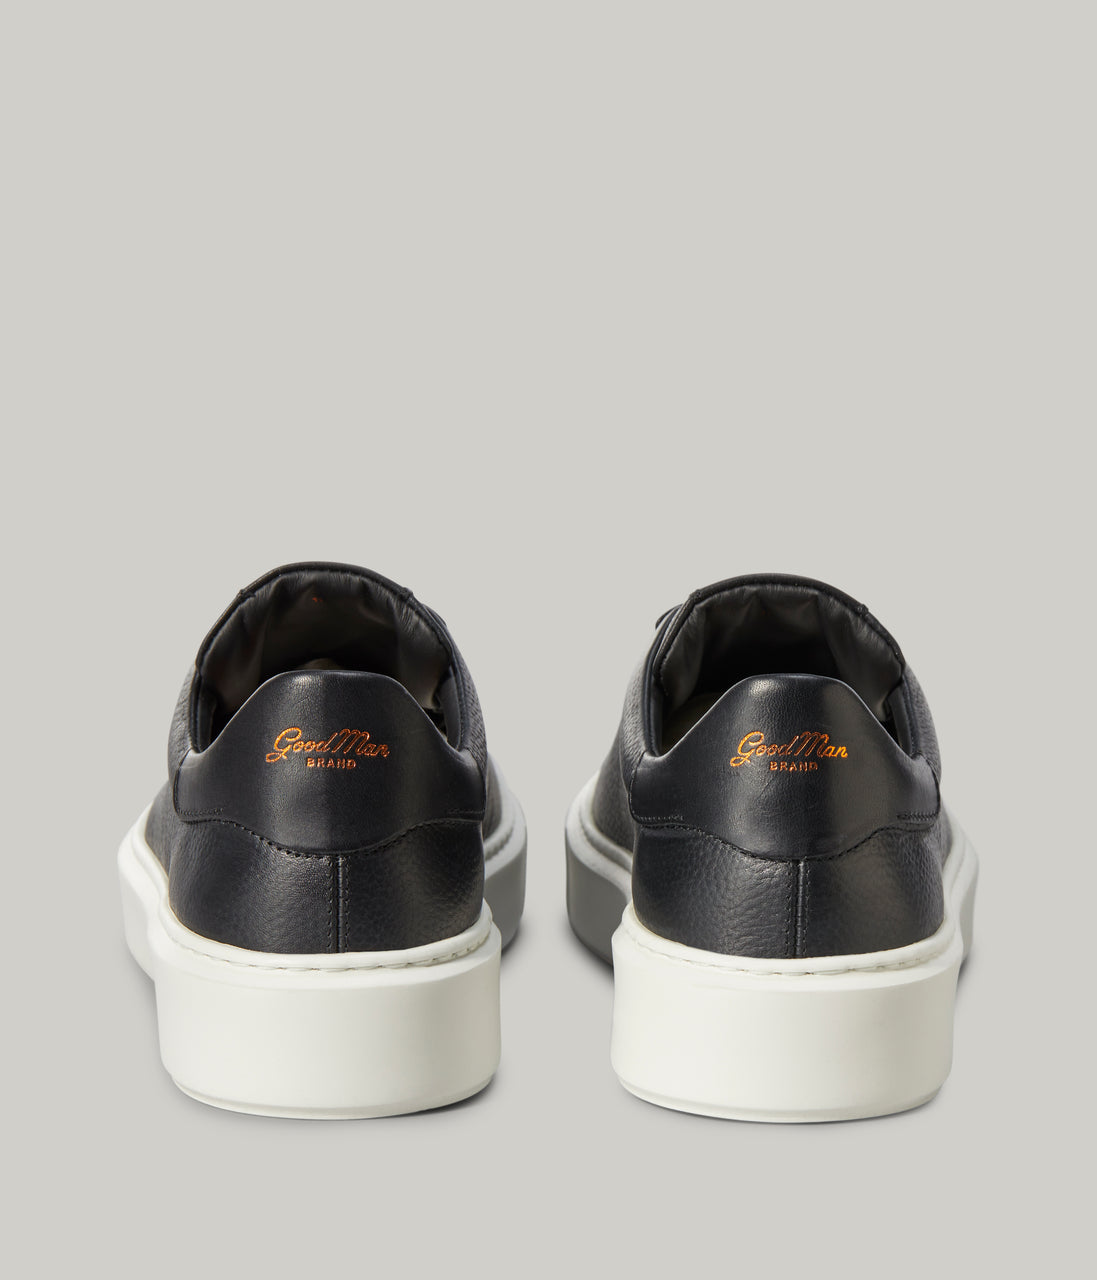 Legend London Sneaker - Black Pebble - Good Man Brand - Legend London Sneaker - Black Pebble